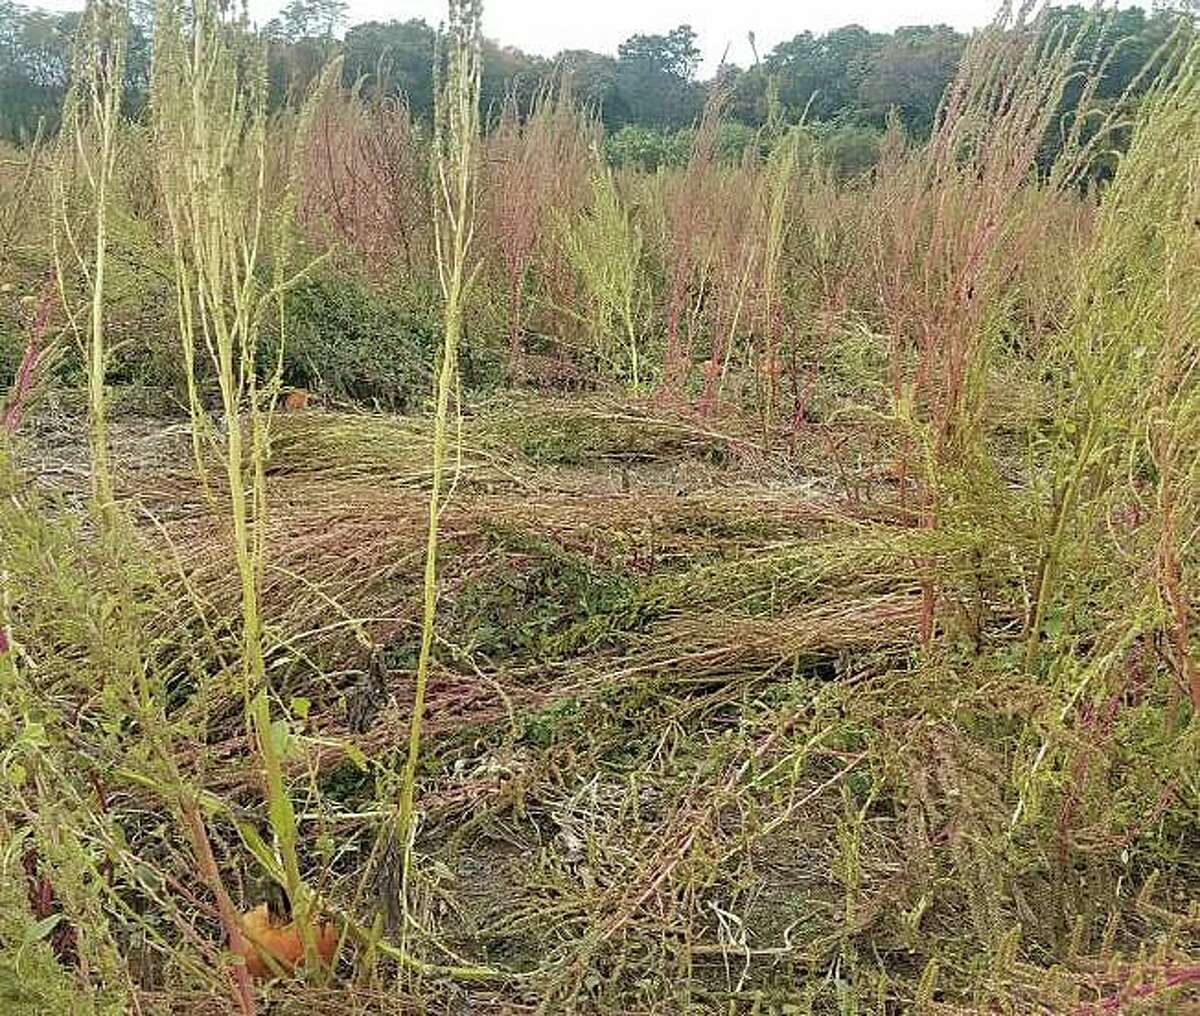 Connecticut Agricultural Experiment Station scientists have discovered a highly invasive and noxious species of pigweed in Connecticut.